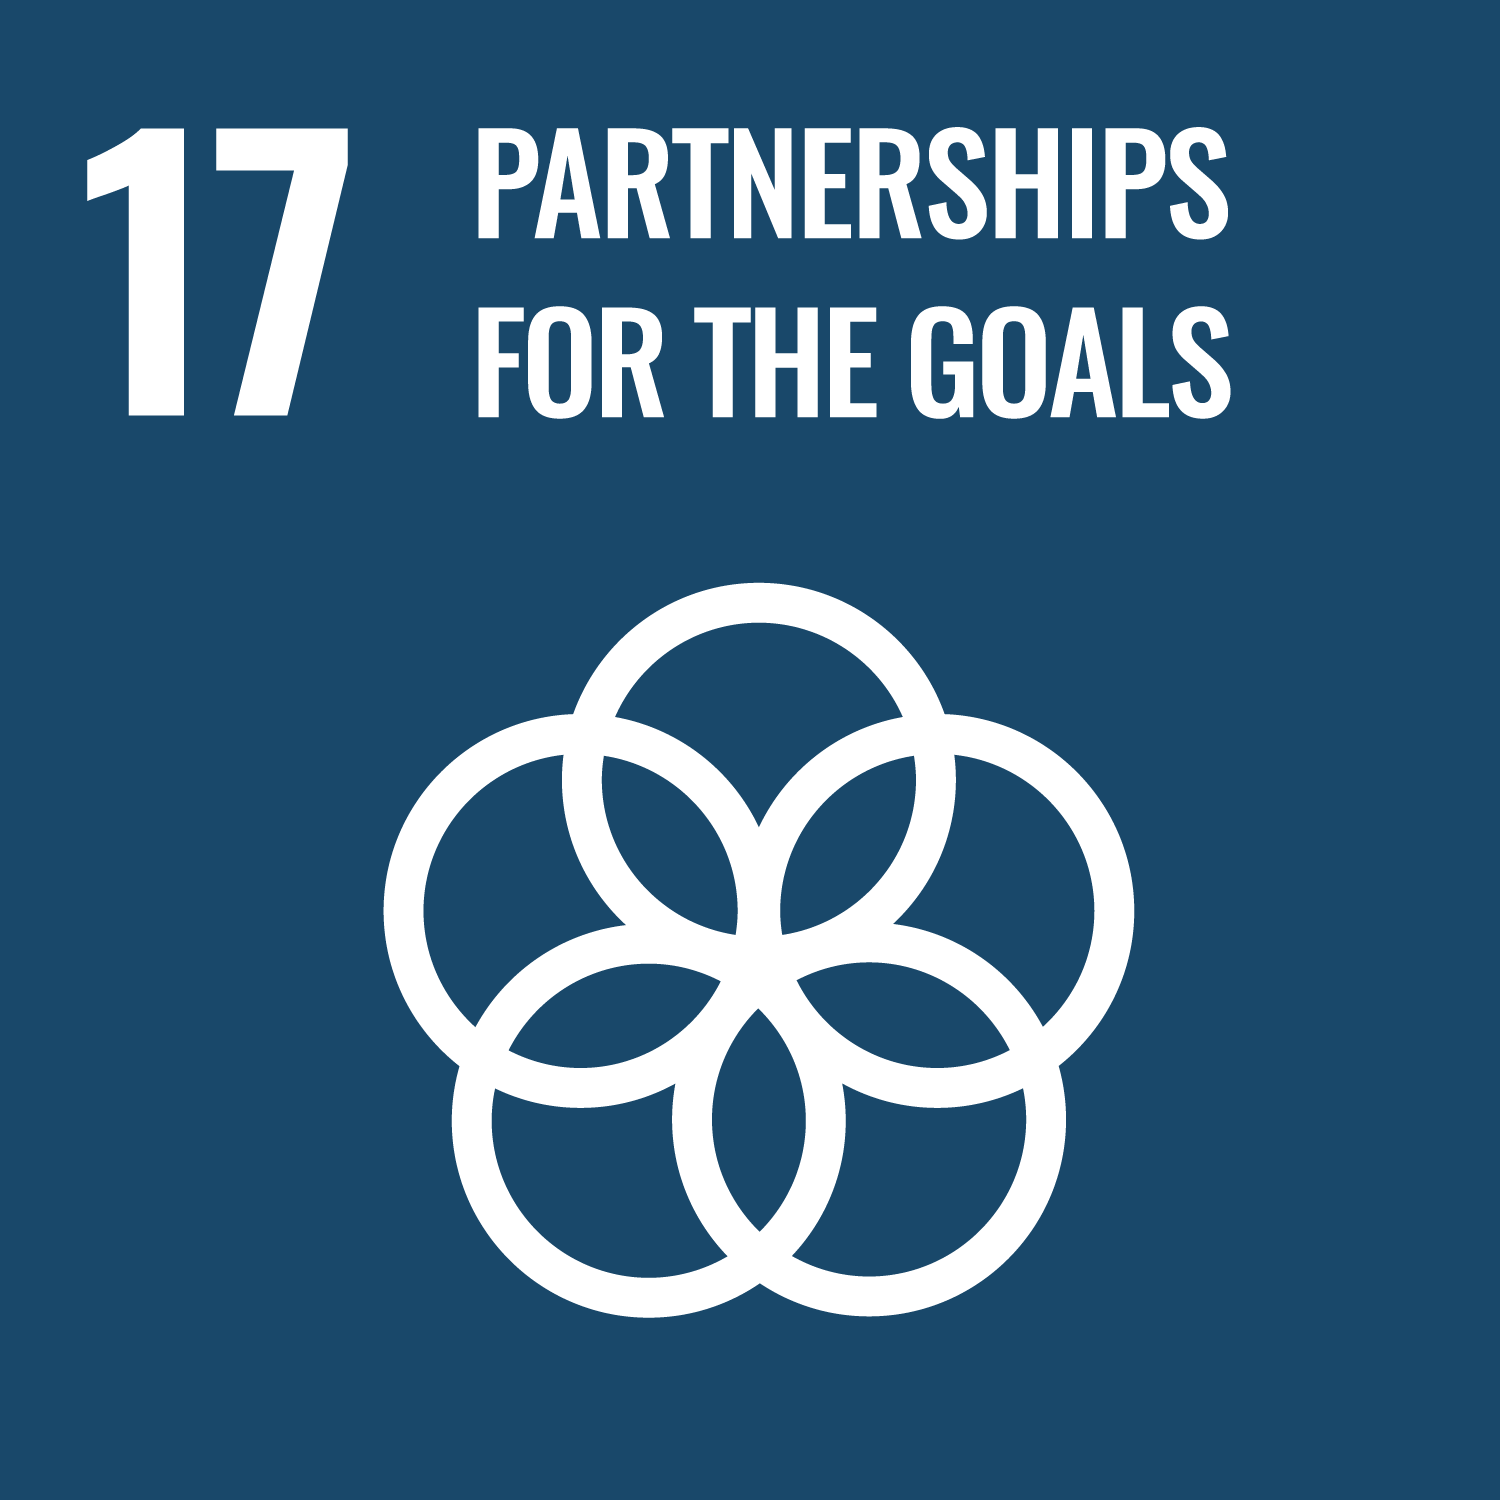 SDG 17: Partnerships for the Goals